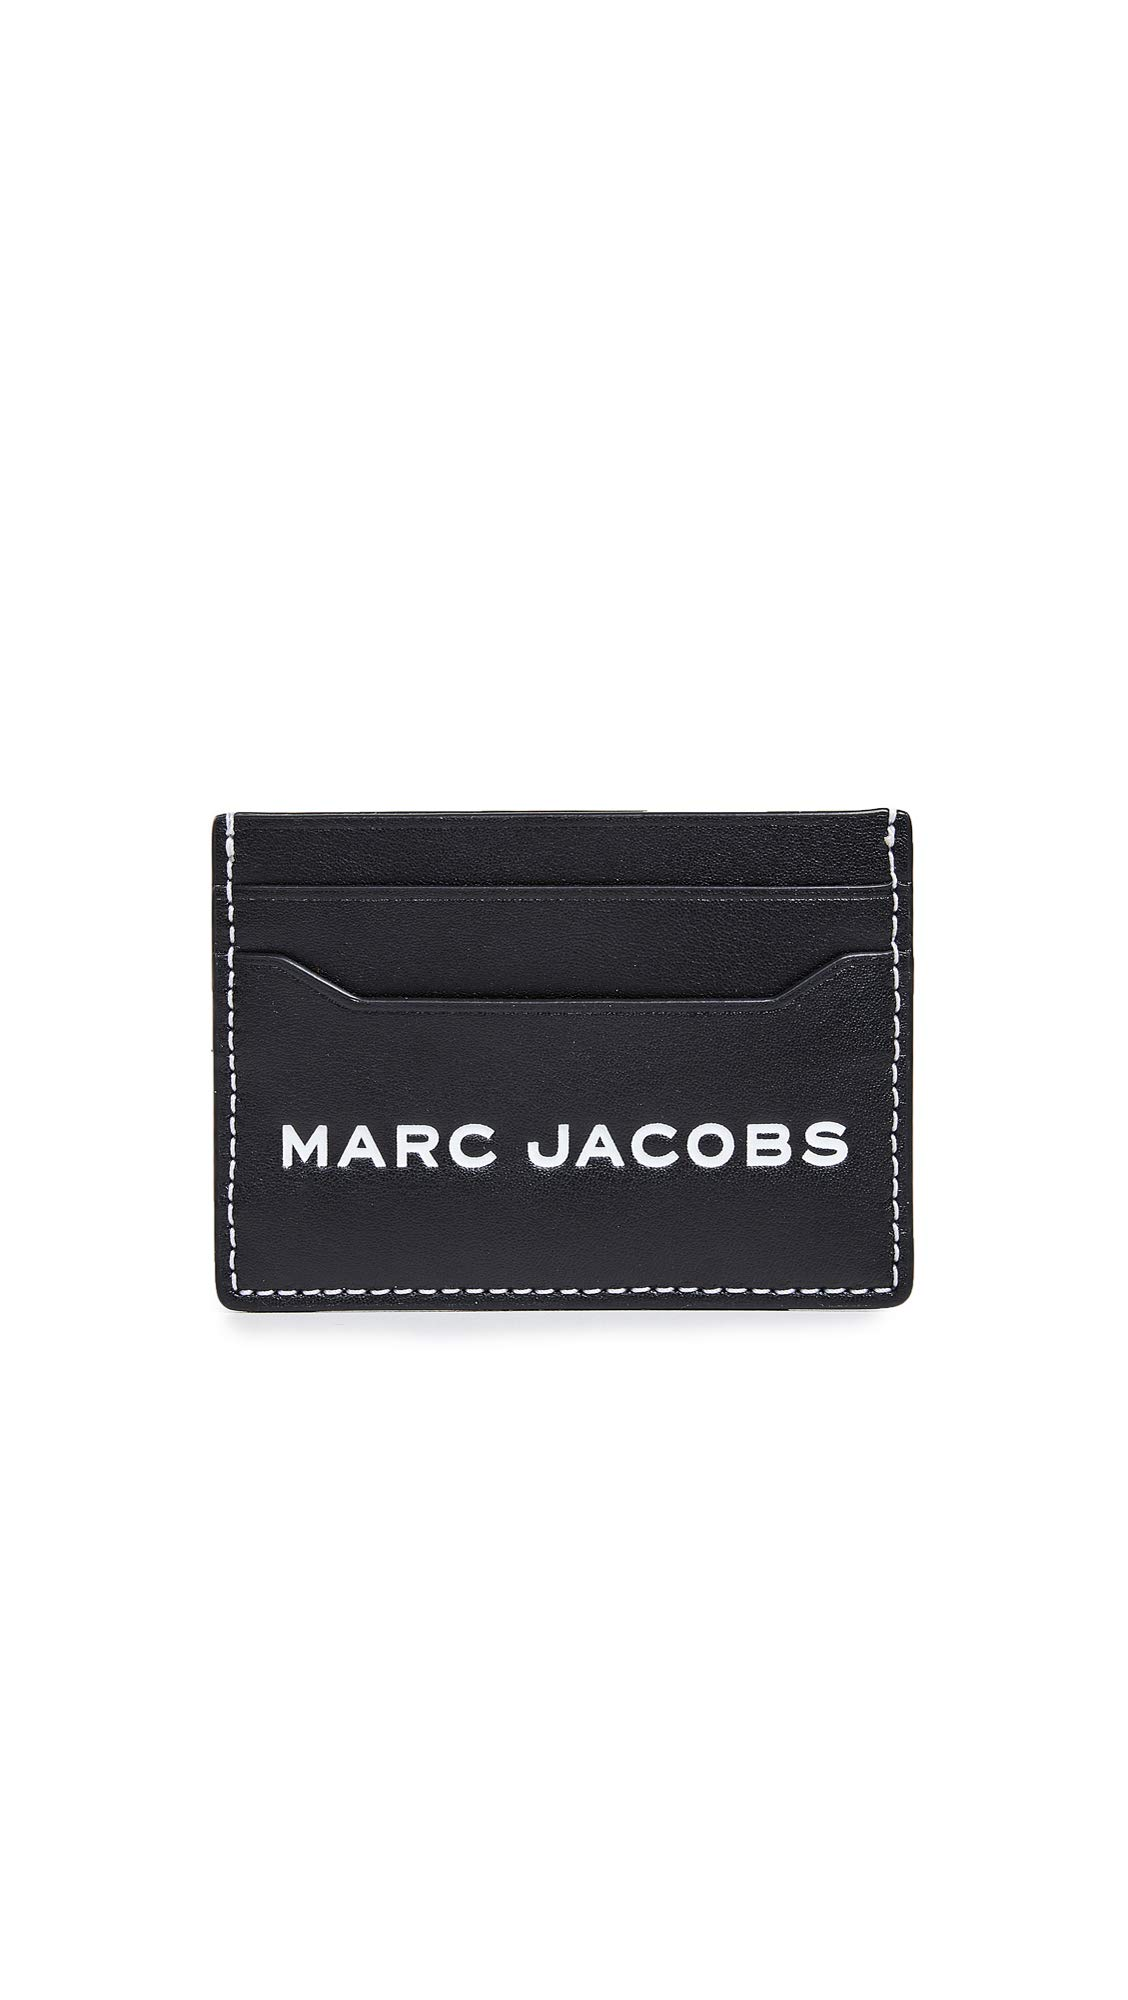 Marc Jacobs Women's Snapshot Card Case, Black, One Size